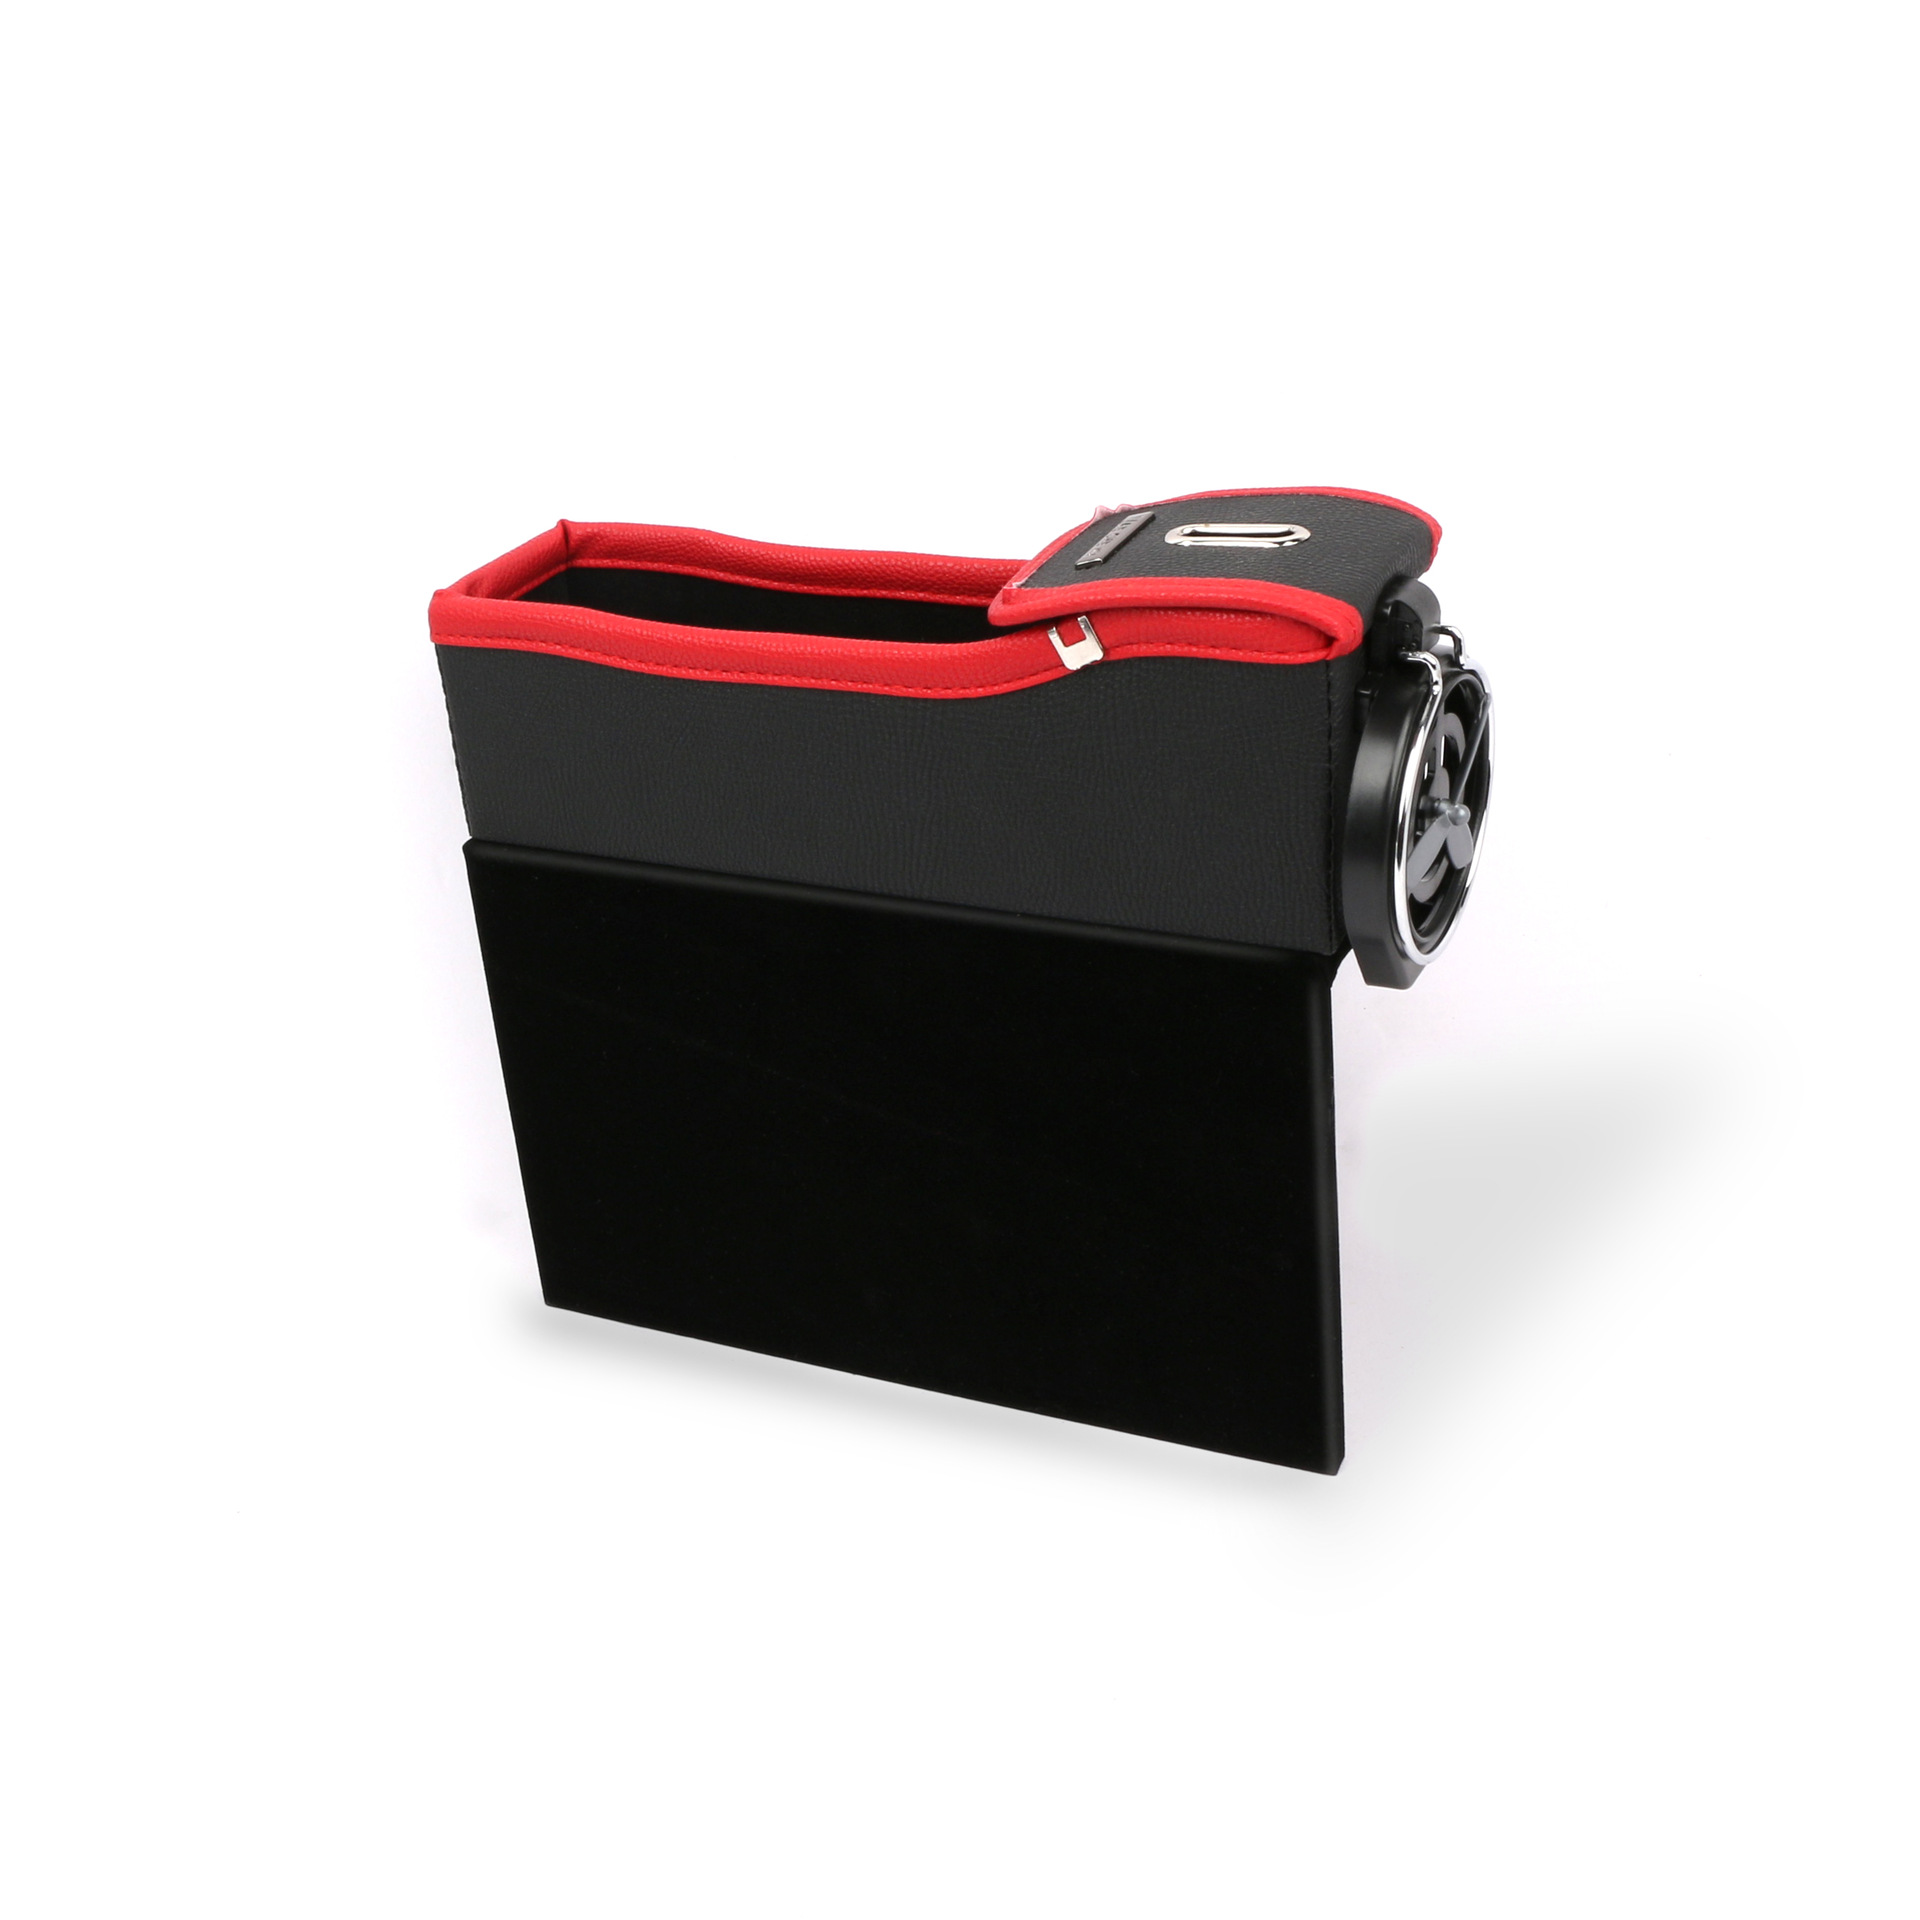 Car Seat Storage Box Cup Drink Holder Organizer Auto Gap Pocket Stowing Tidying for Phone Pad Card Coin  Black and red master driving